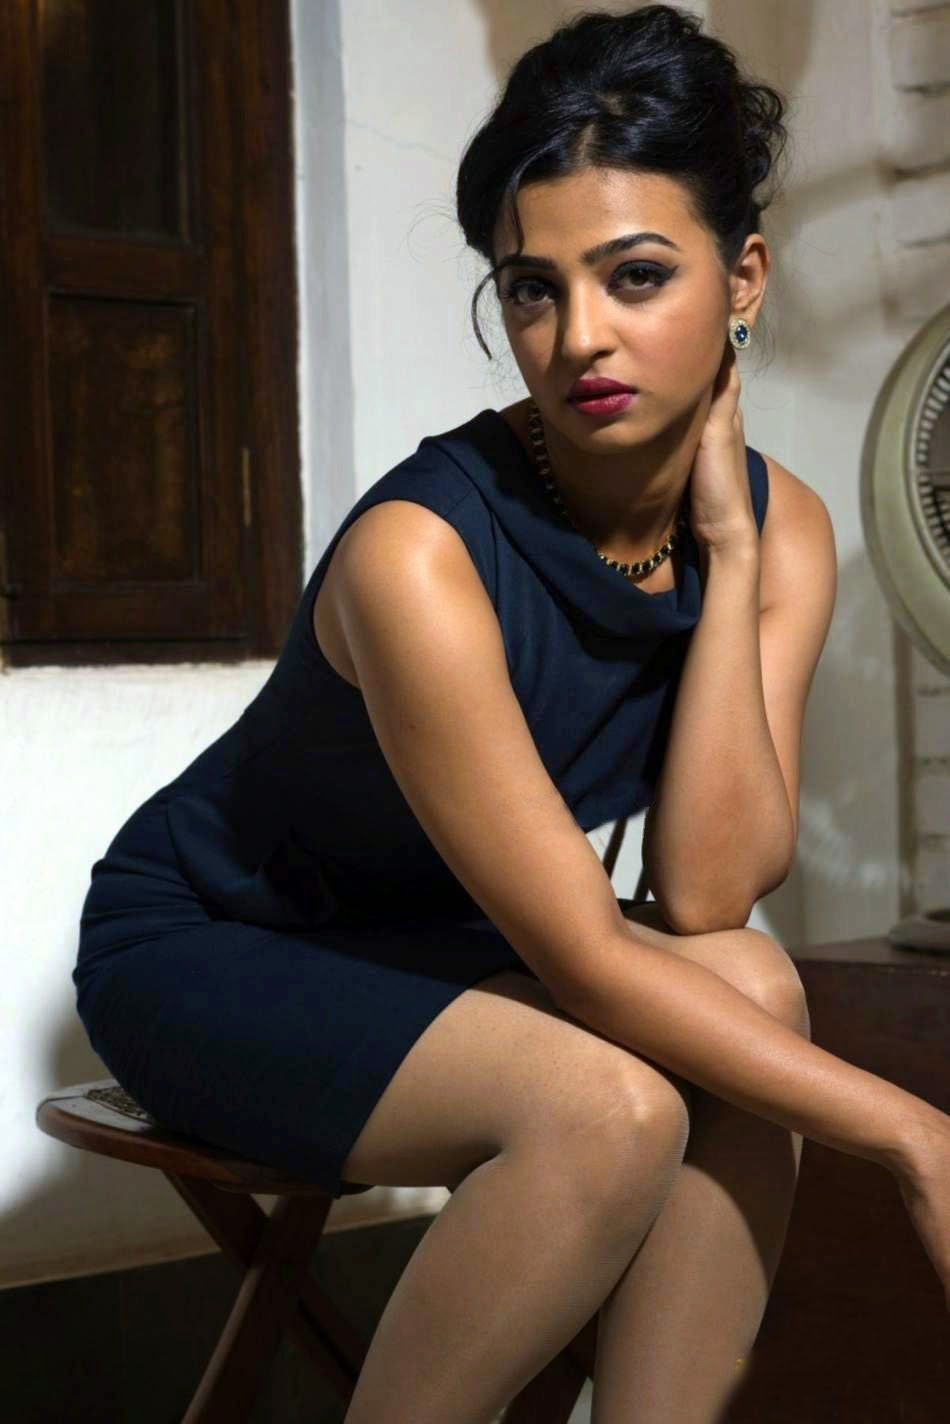 radhika-apte-naked-photos